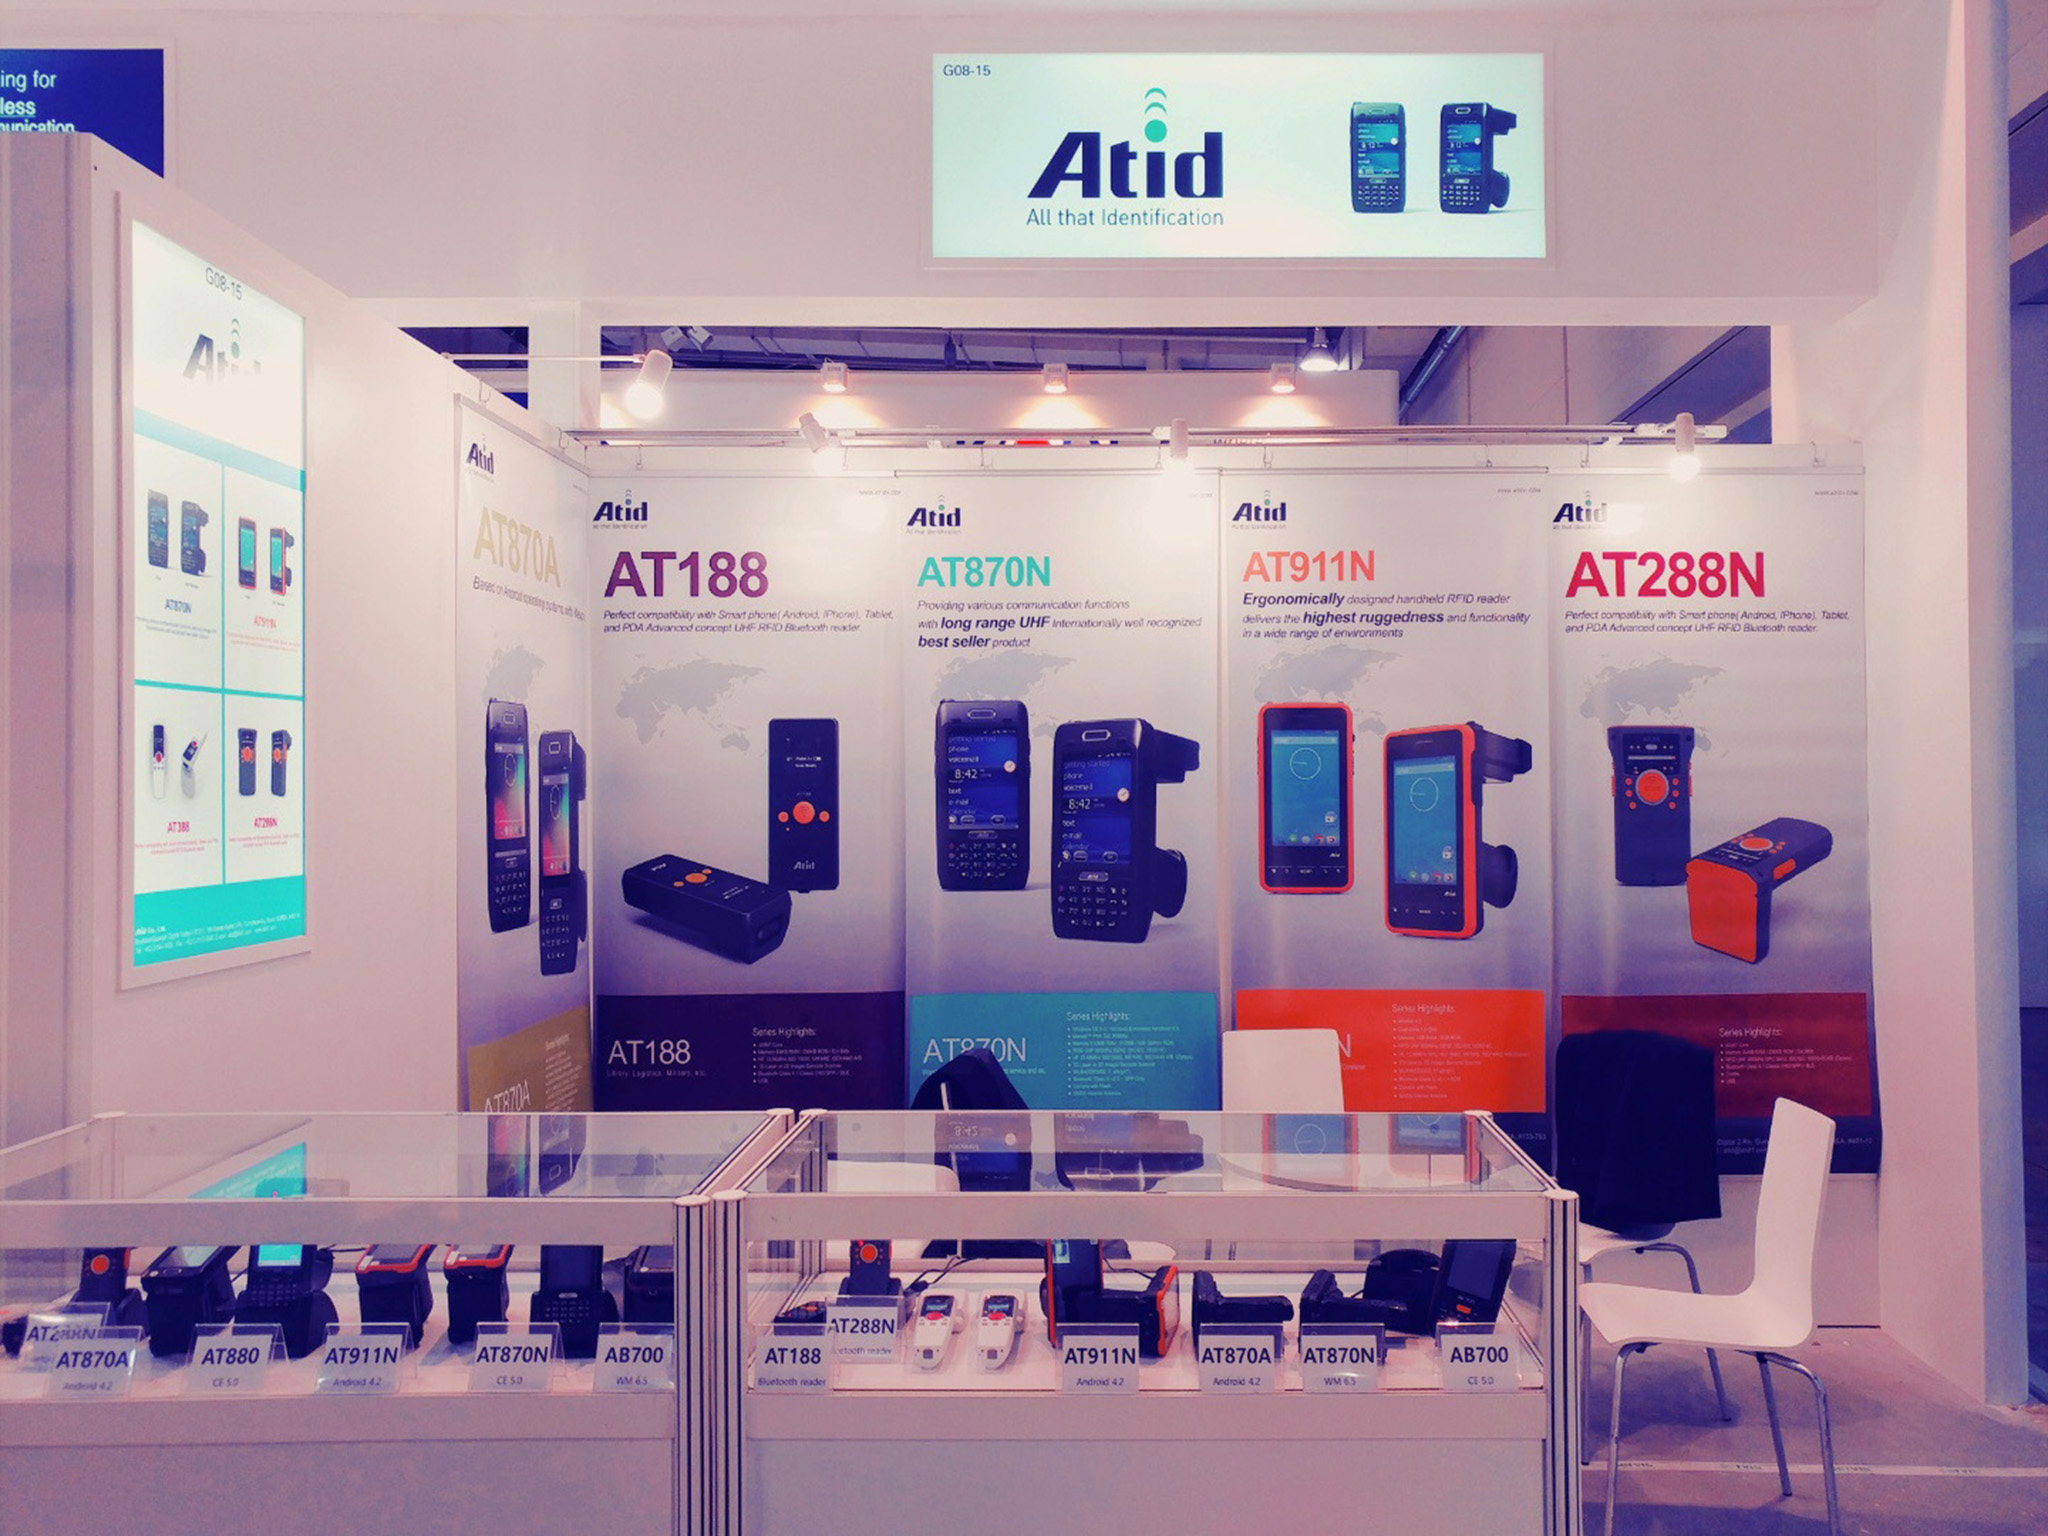 CeBIT 2017 Germany Atid booth